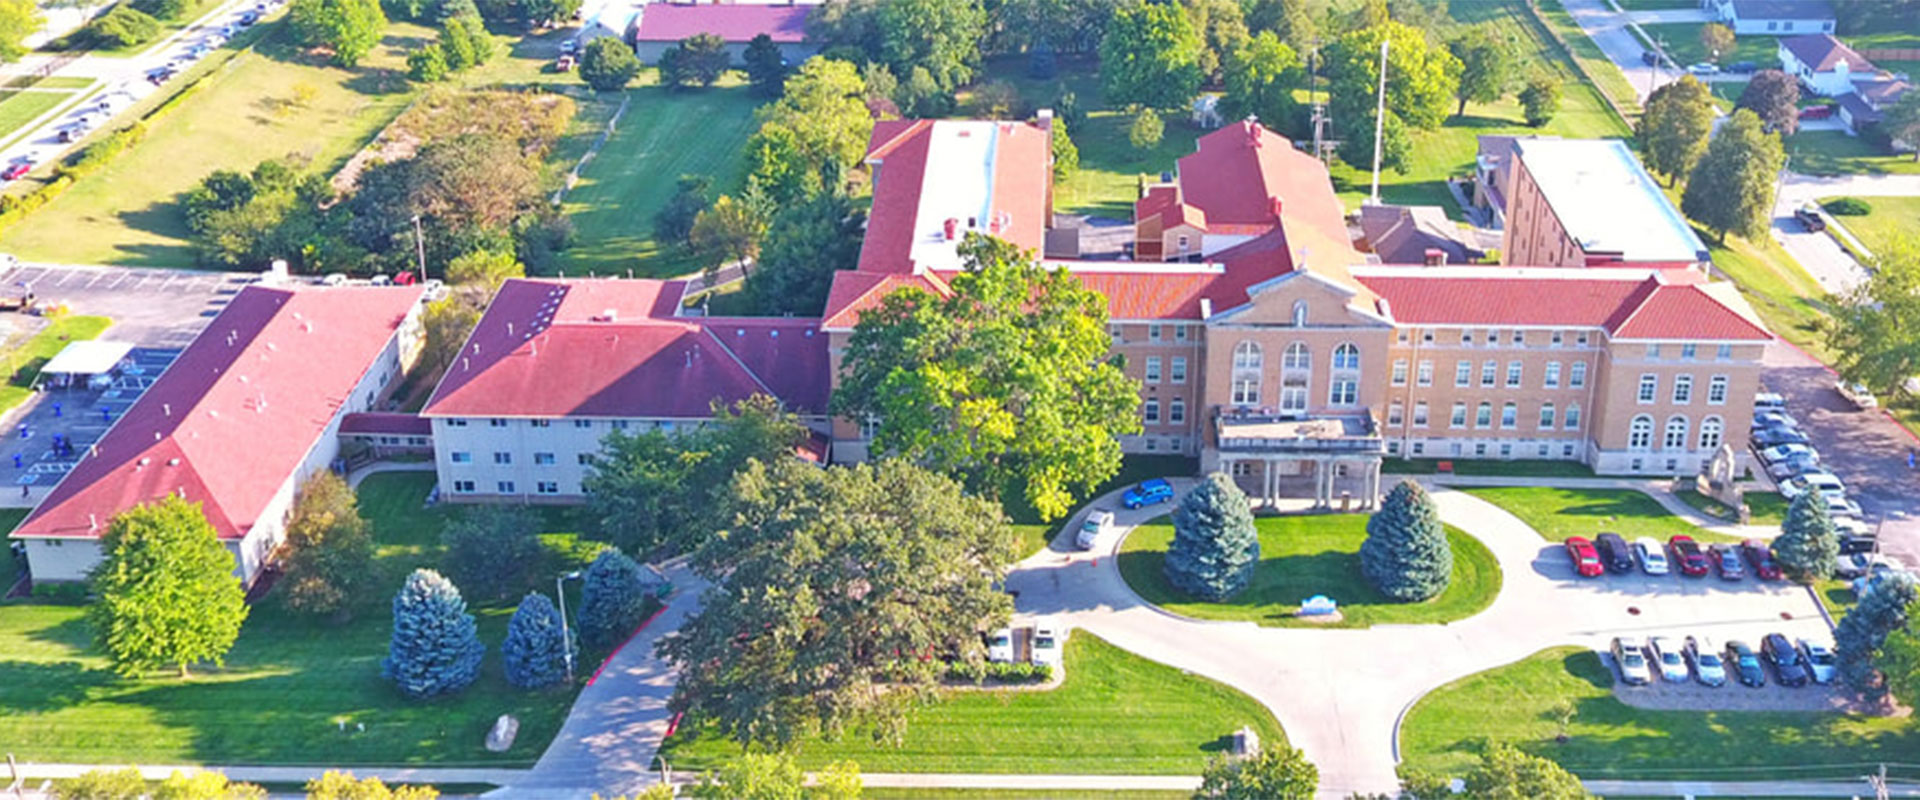 notre dame housing aerial view